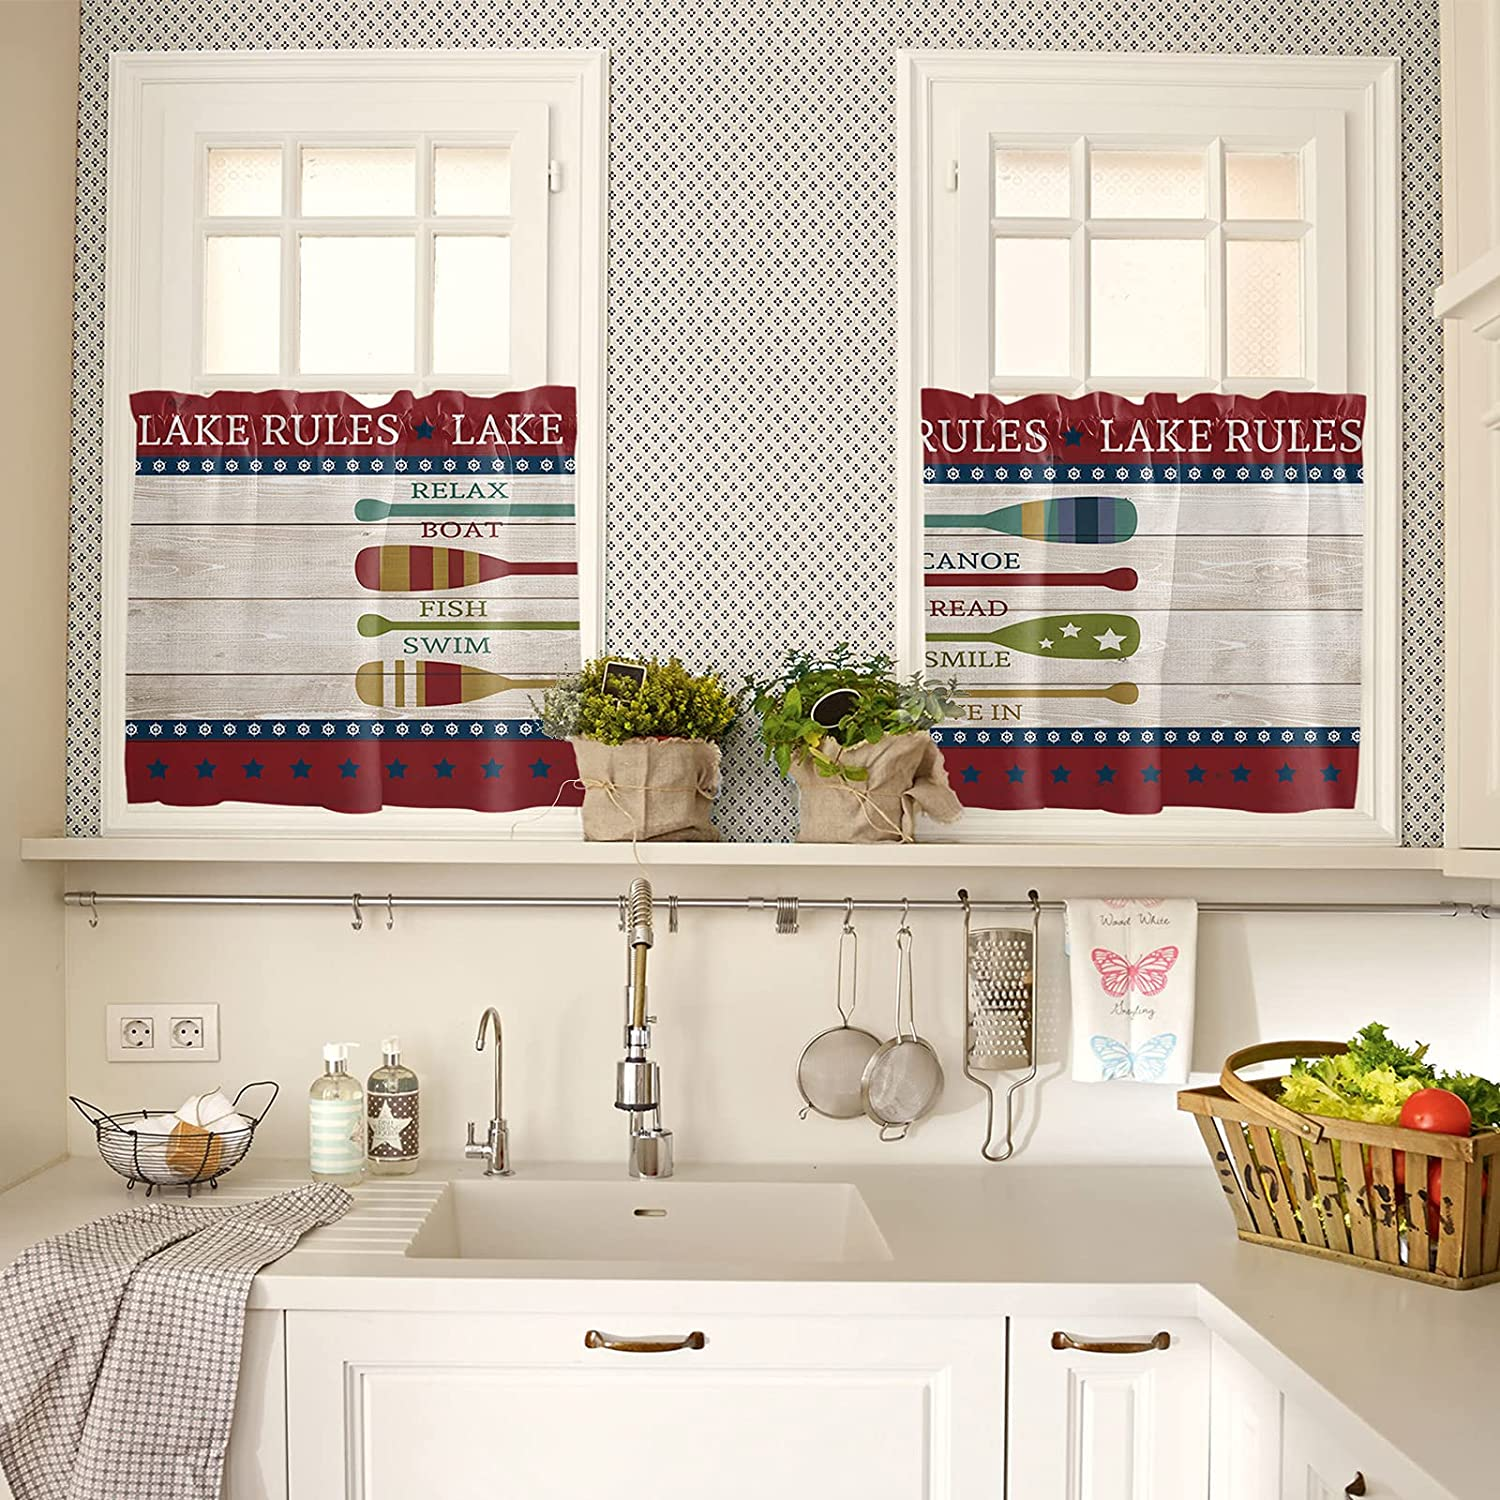 Wood Grain Tour The Lake Paddle in Summer Kitchen Curtains 24 In